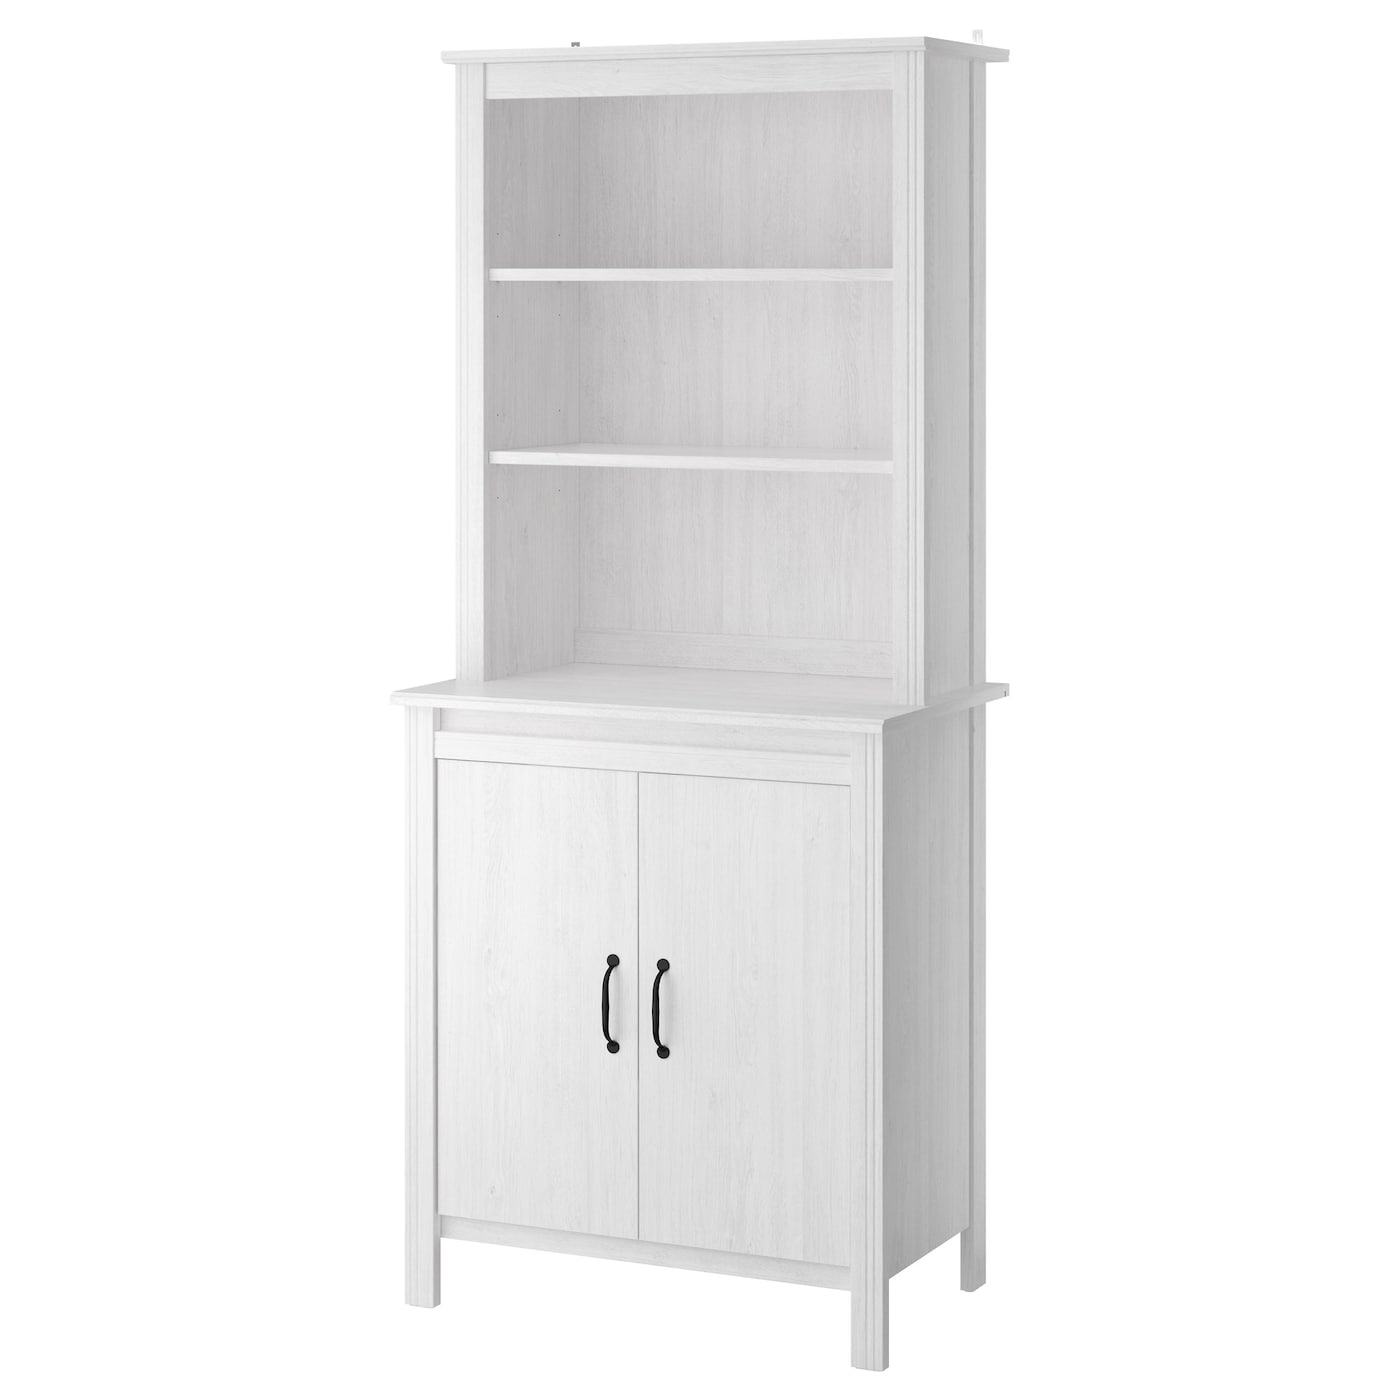 Brusali high cabinet with door white 80x190 cm ikea for Ikea storage cabinets kitchen